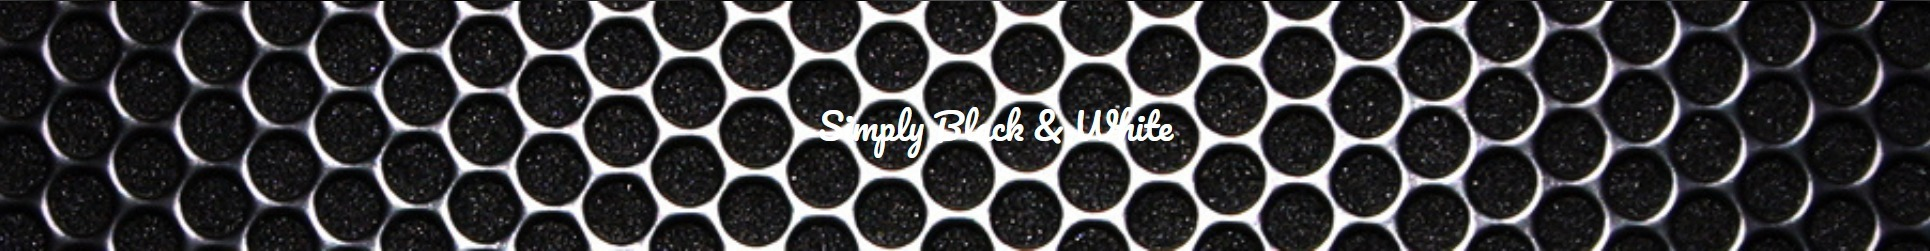 Simply Black n White (@simply_black_n_white) Cover Image